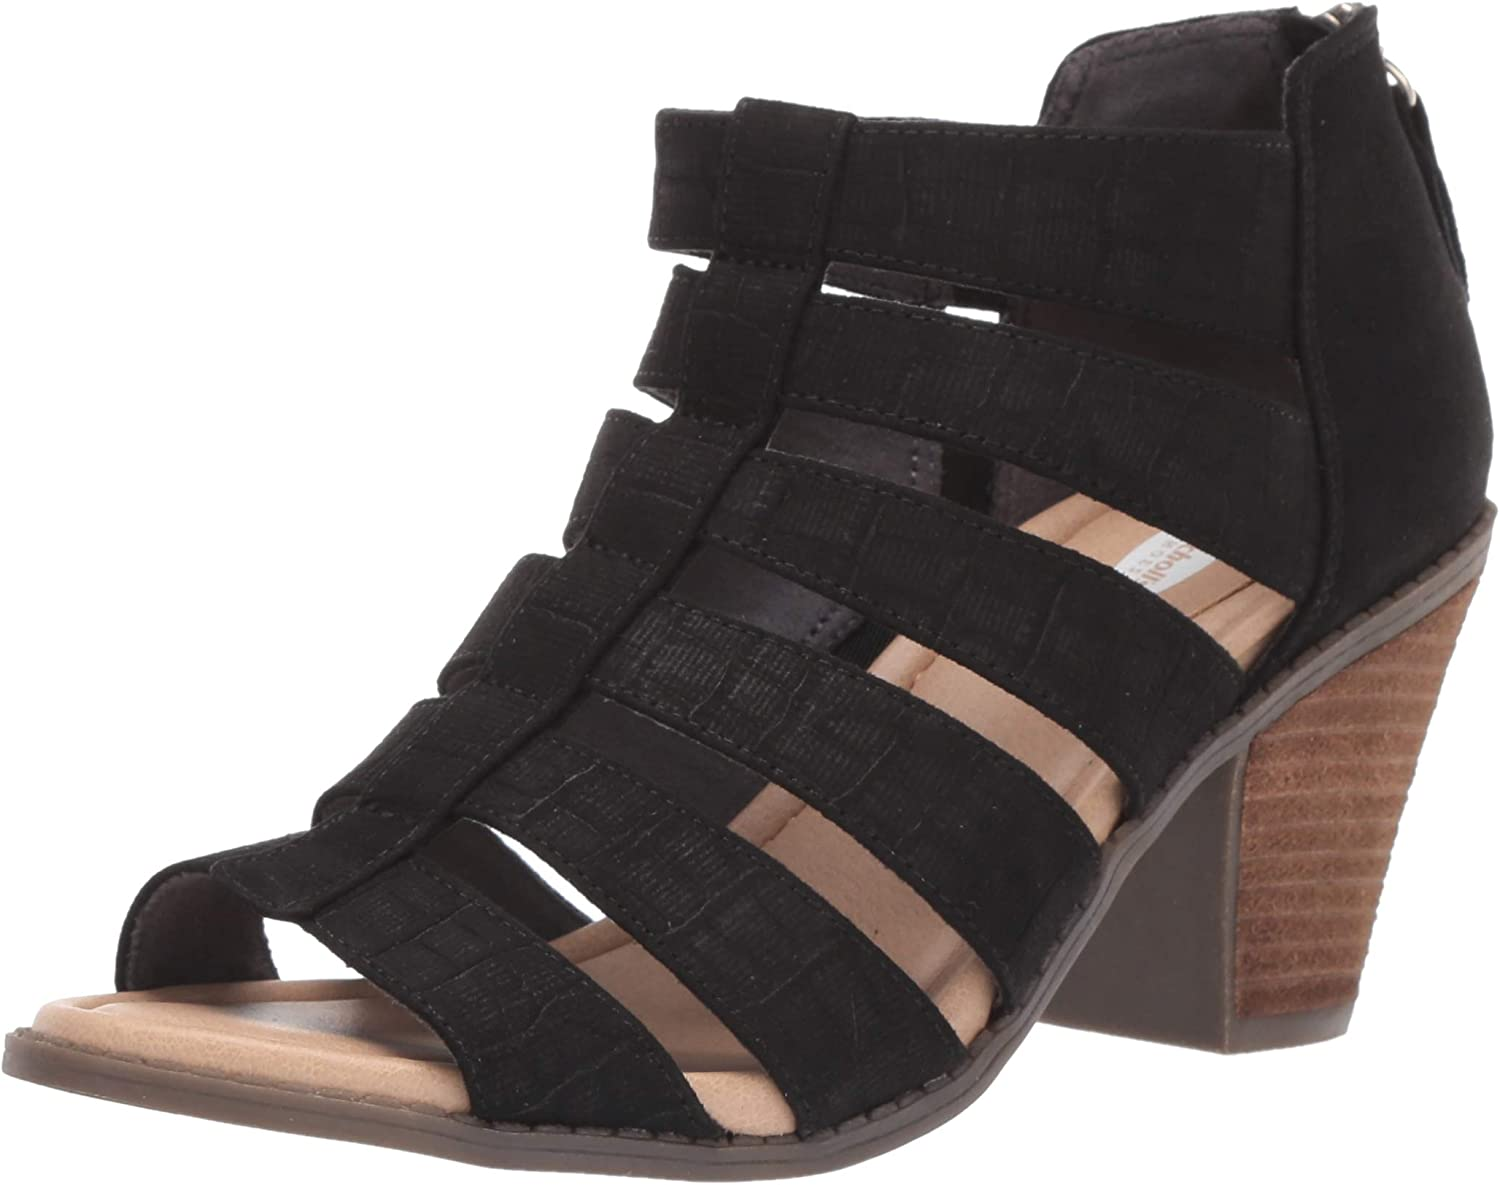 Dr. Scholl's shoes Womens Chaser Heeled Sandal